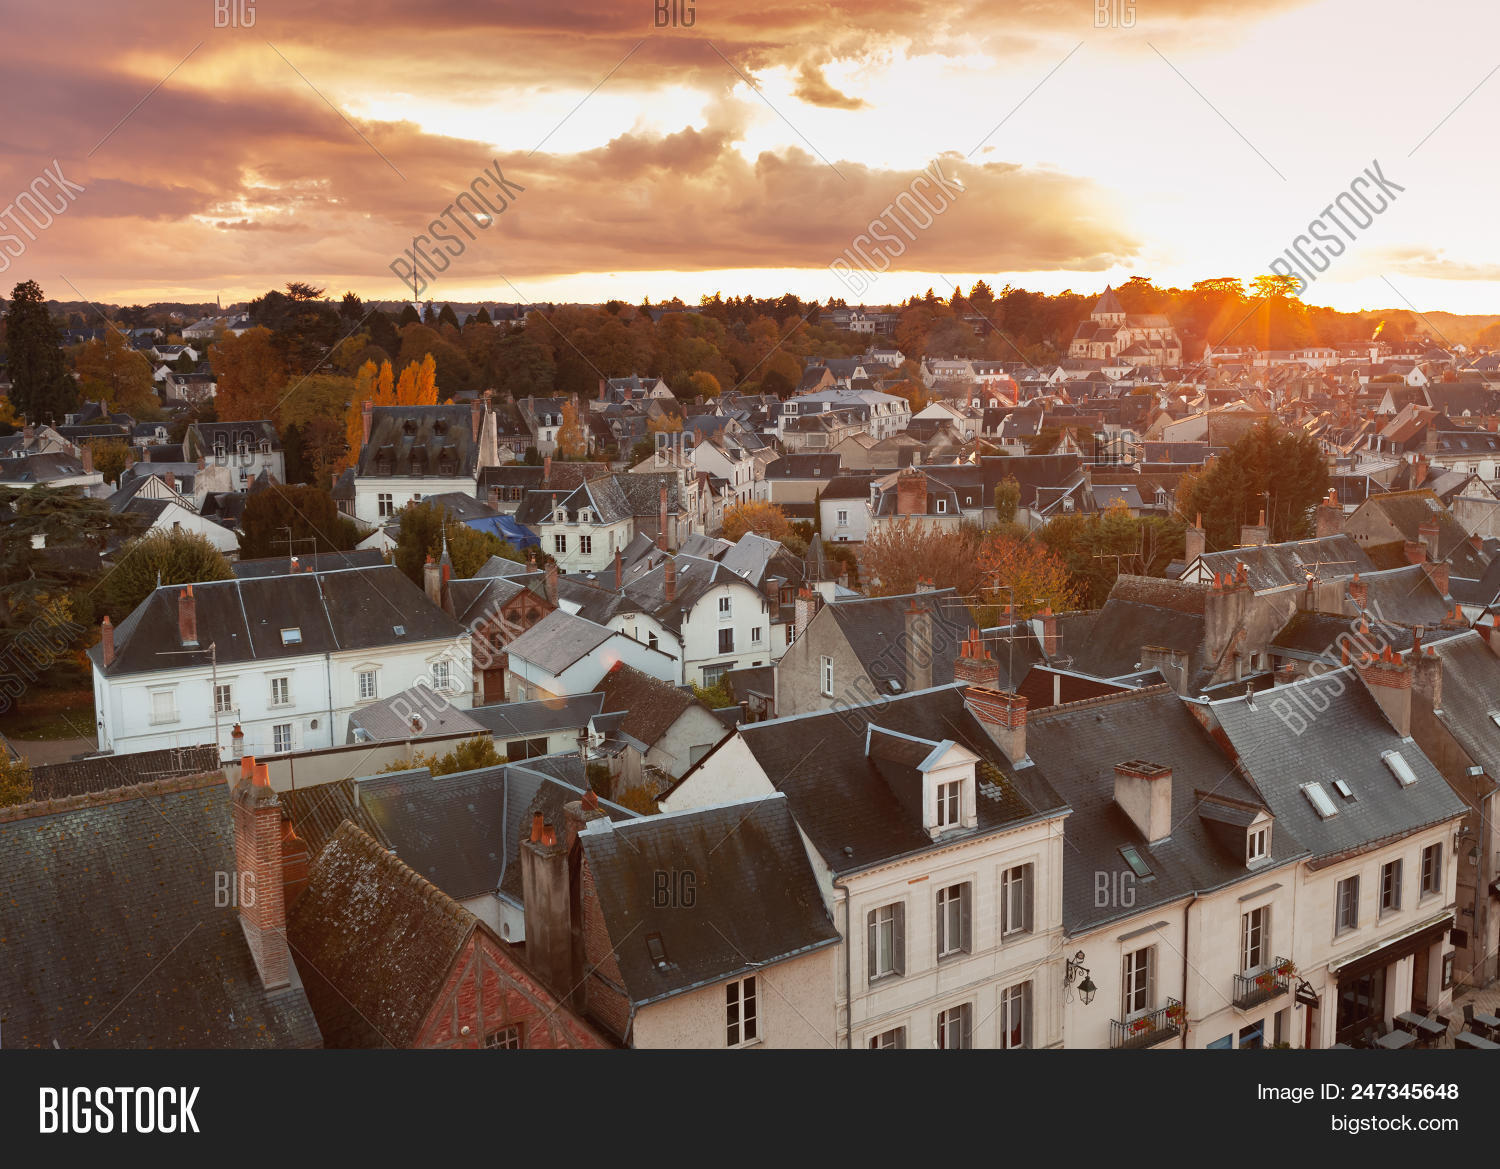 aerial,amboise,ancient,architecture,attraction,bright,building,center,city,cityscape,clouds,colorful,culture,dawn,destination,europe,european,evening,facade,famous,france,french,heritage,historical,history,house,landmark,landscape,loire,medieval,nobody,old,outdoor,roof,rooftops,scenic,sightseeing,sky,skyline,stone,street,sun,sunlight,sunset,tourism,town,travel,urban,view,village